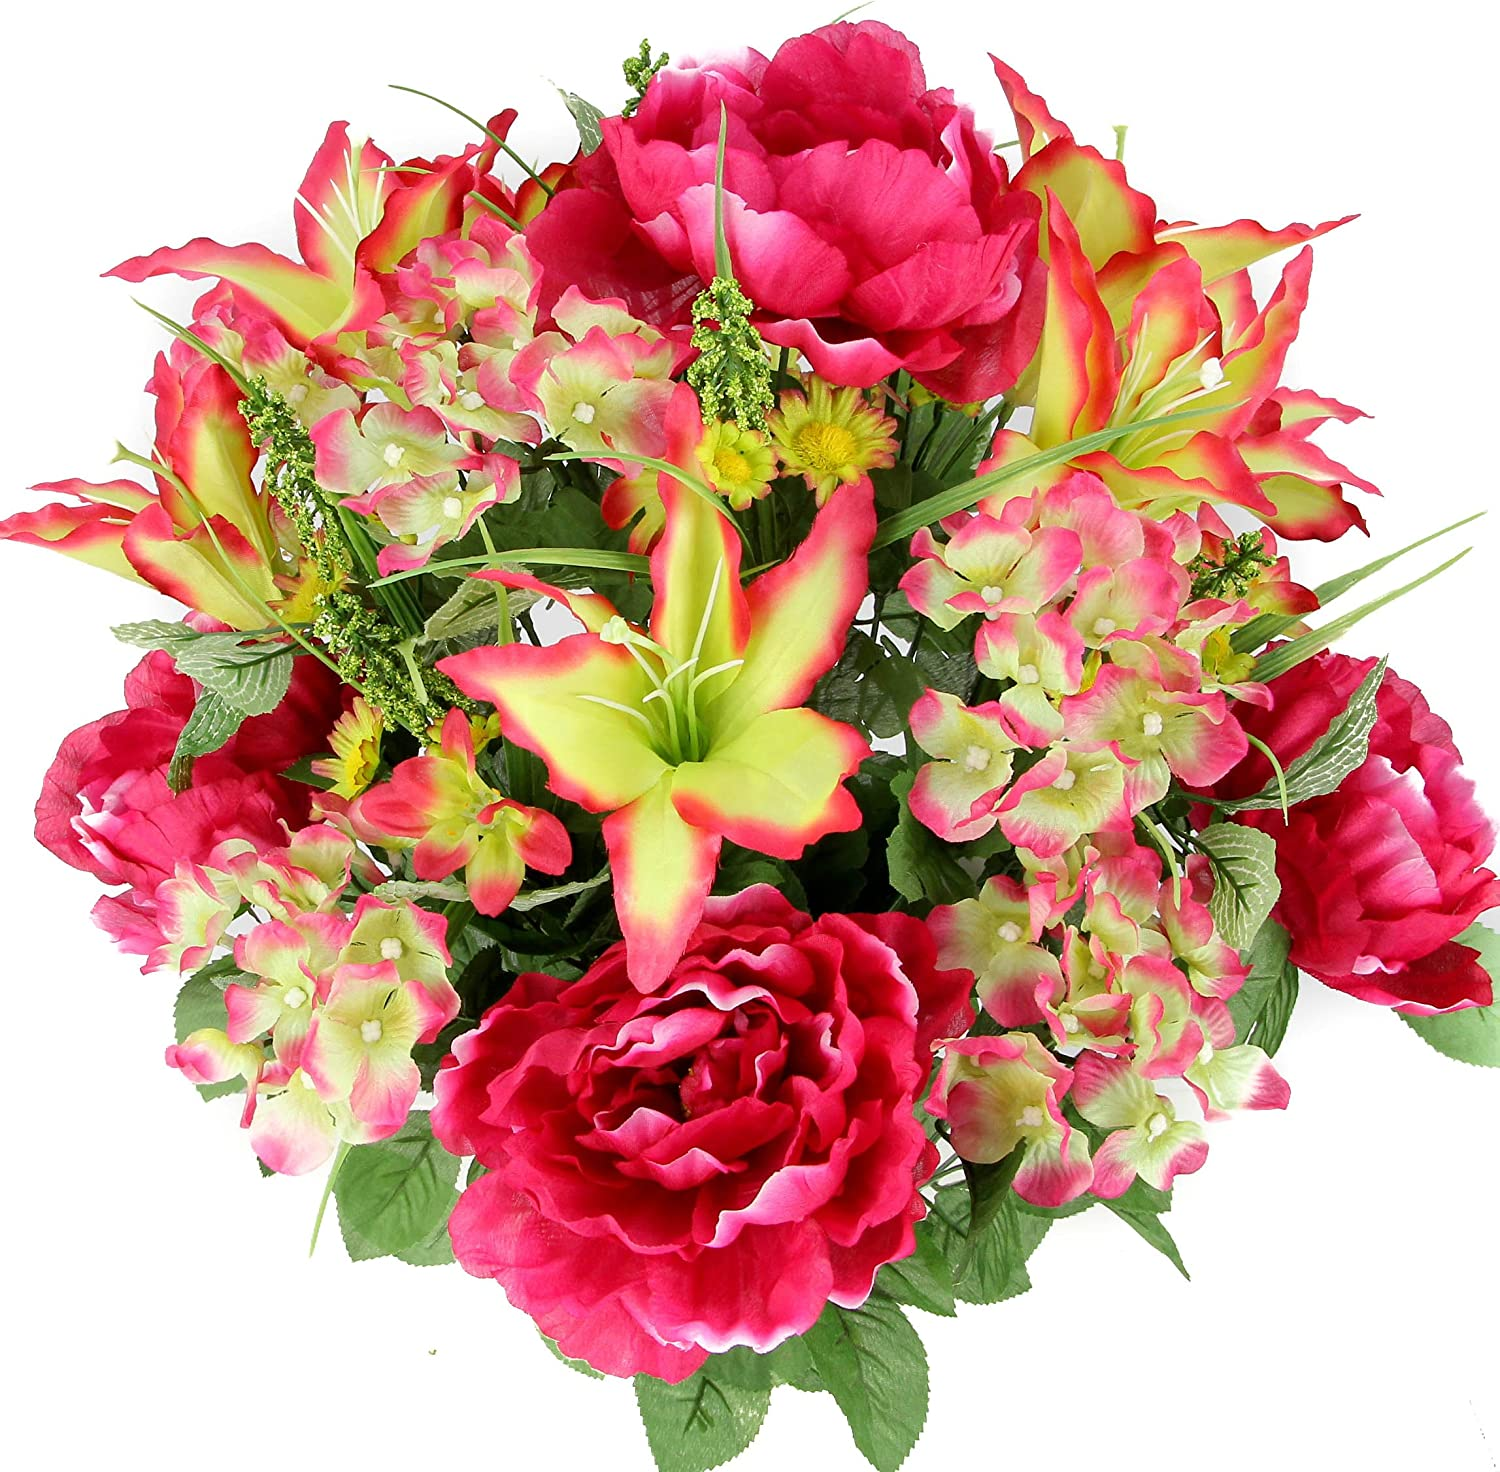 Admired By Nature 24 Stems Artificial Full Blooming Tiger Lily, Peony & Hydrangea with Green Foliage Mixed Flowers Bush for Mother's Day or Decoration for Home, Restaurant, Office & Wedding, Velvet